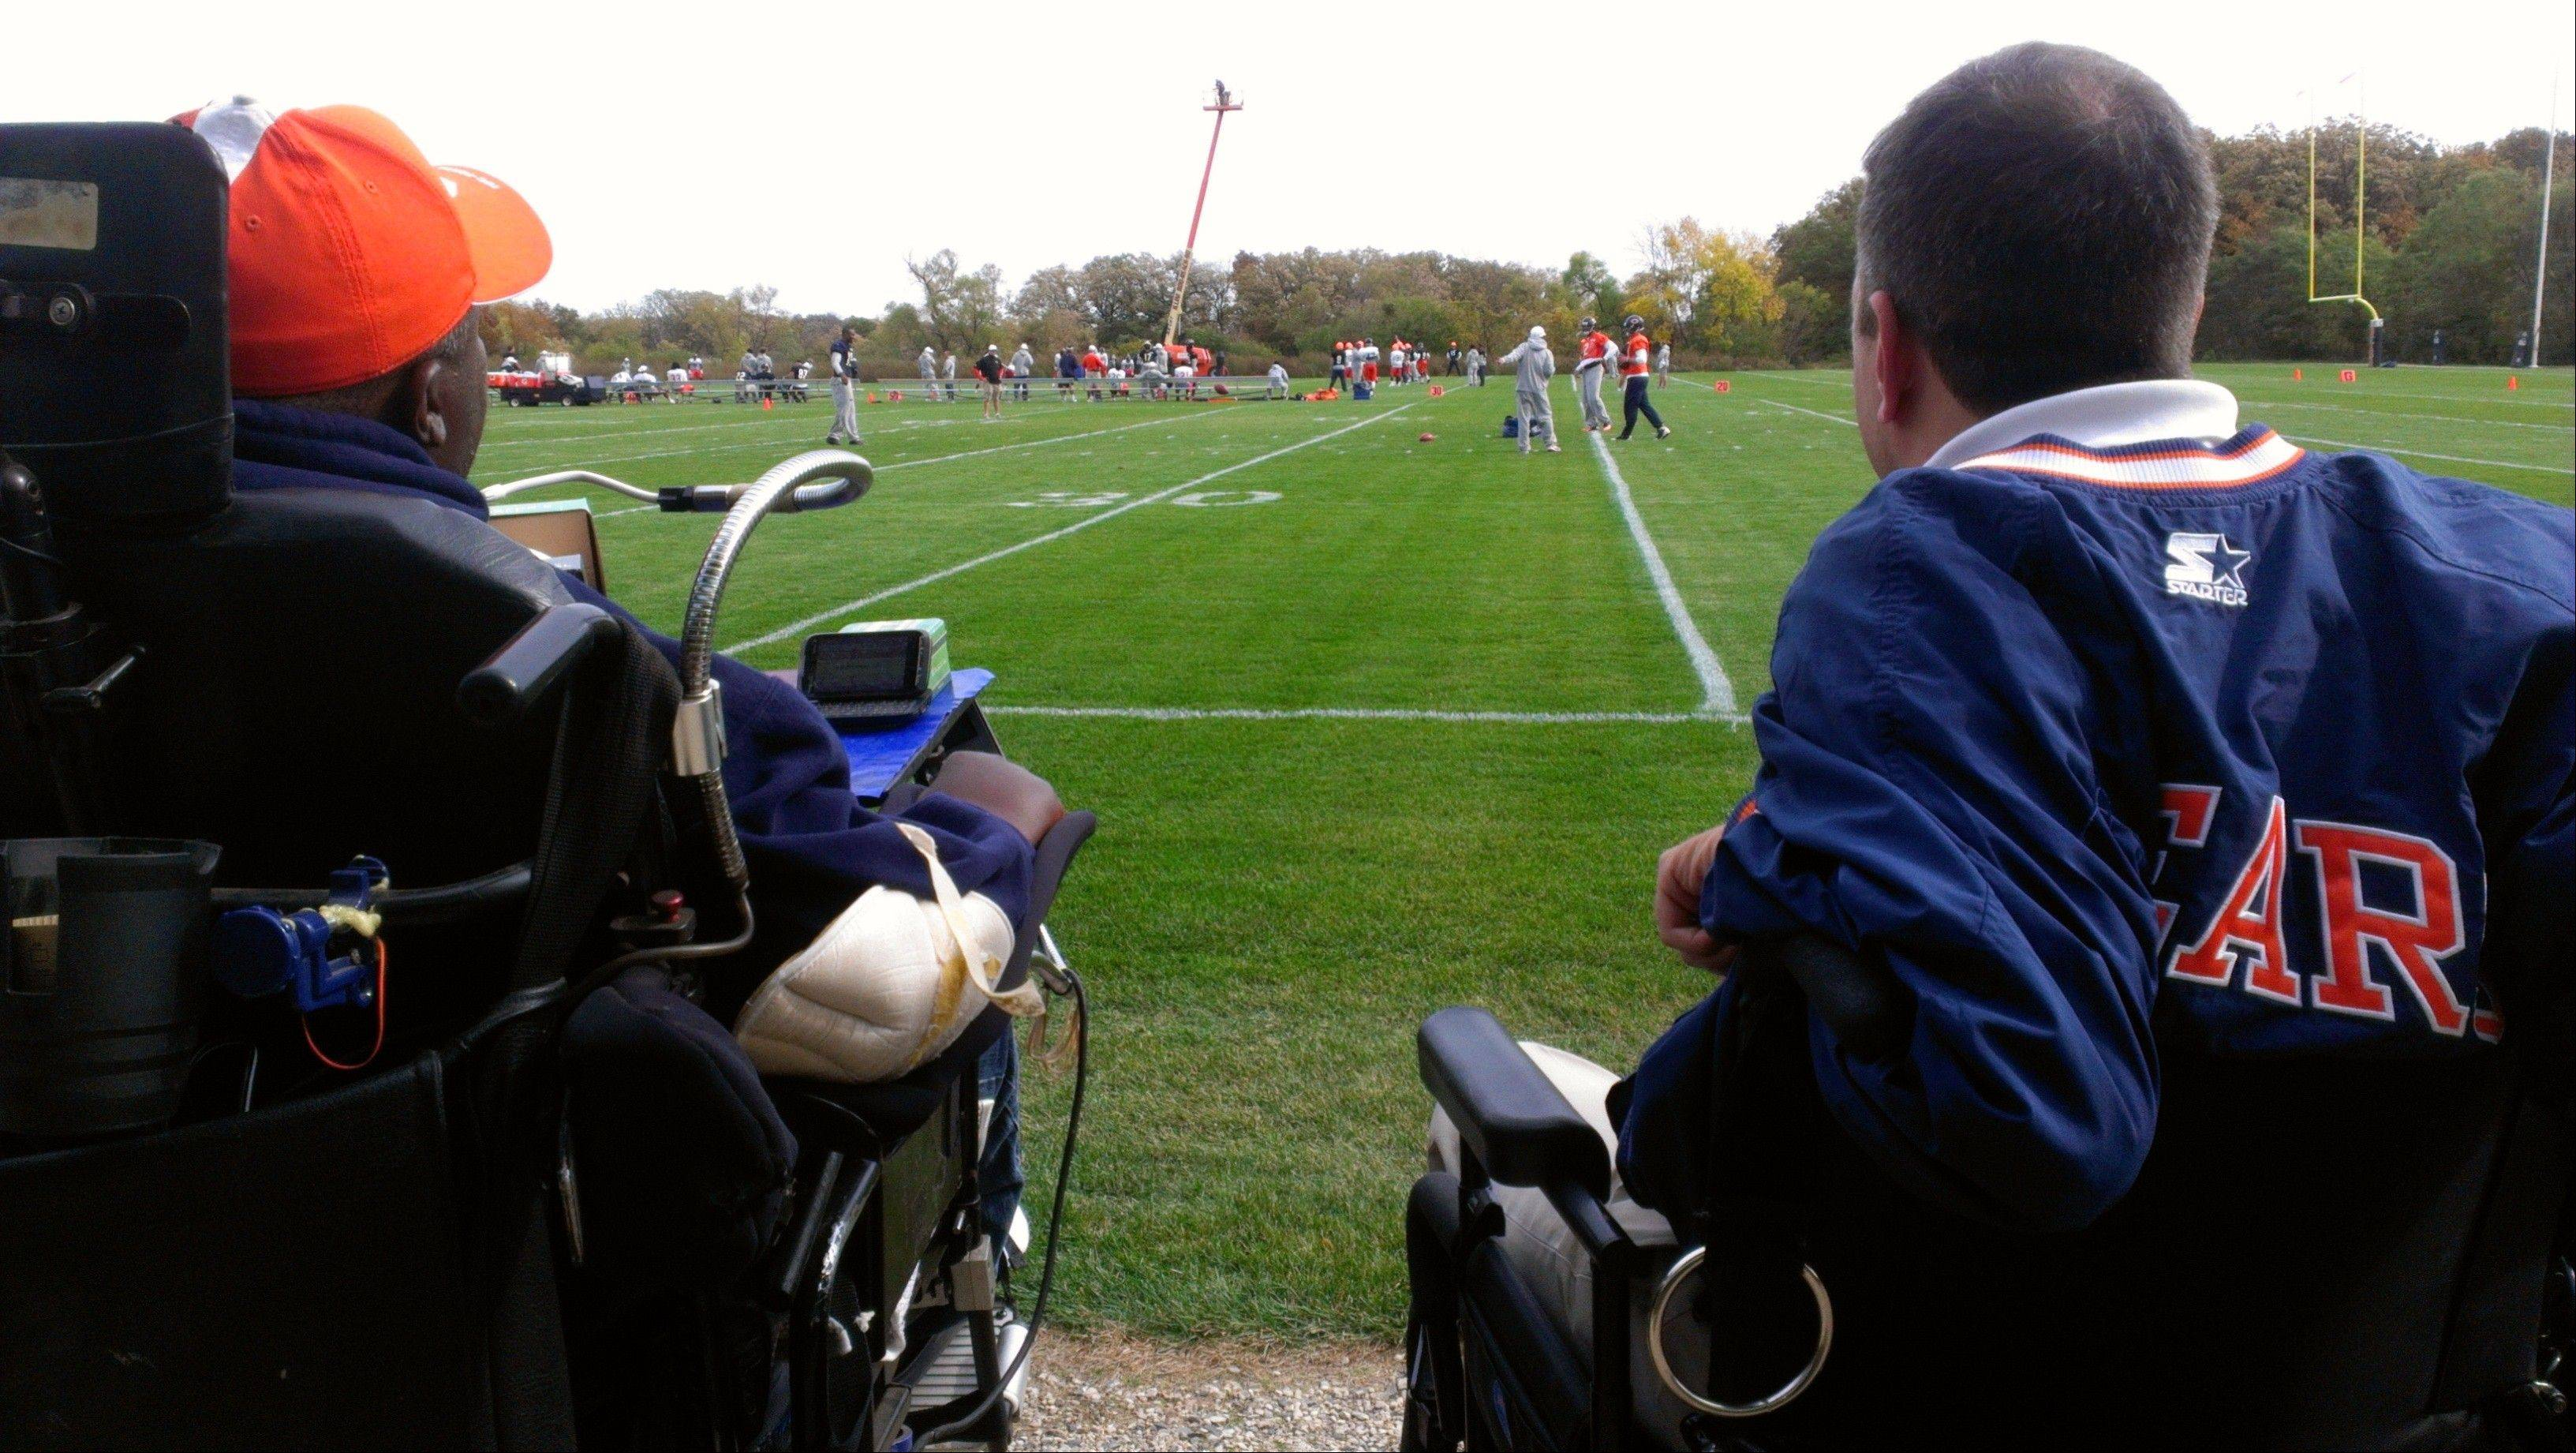 Newly named Gridiron Alliance chairman Kenneth Jennings, left, watches a recent Bears practice with fellow board member Steve Herbst of Palatine. The Gridiron Alliance charity advocates for athletes with catastrophic injuries.